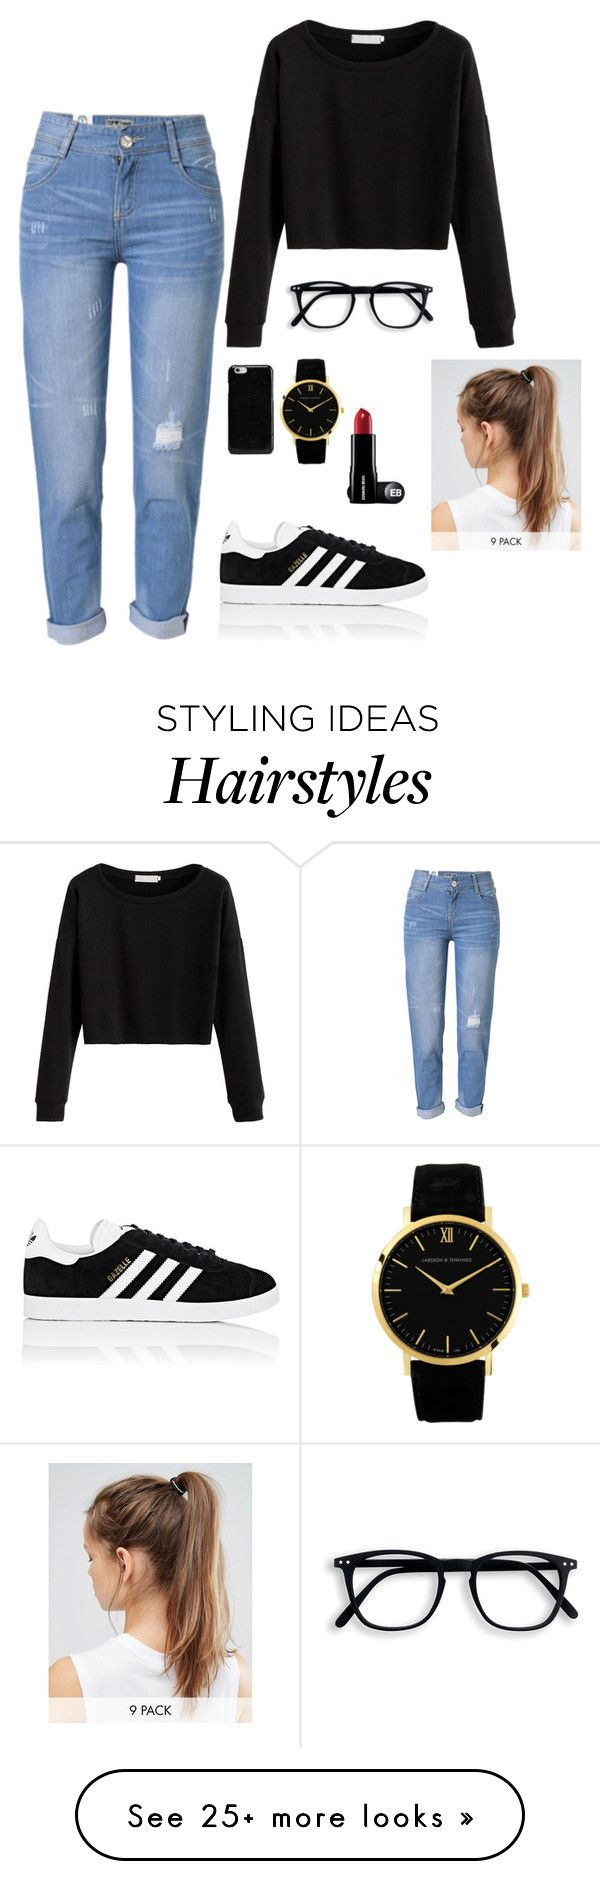 """Mariana"" by briquel13287 on Polyvore featuring WithChic, adidas, Maison Margiela and NIKE"